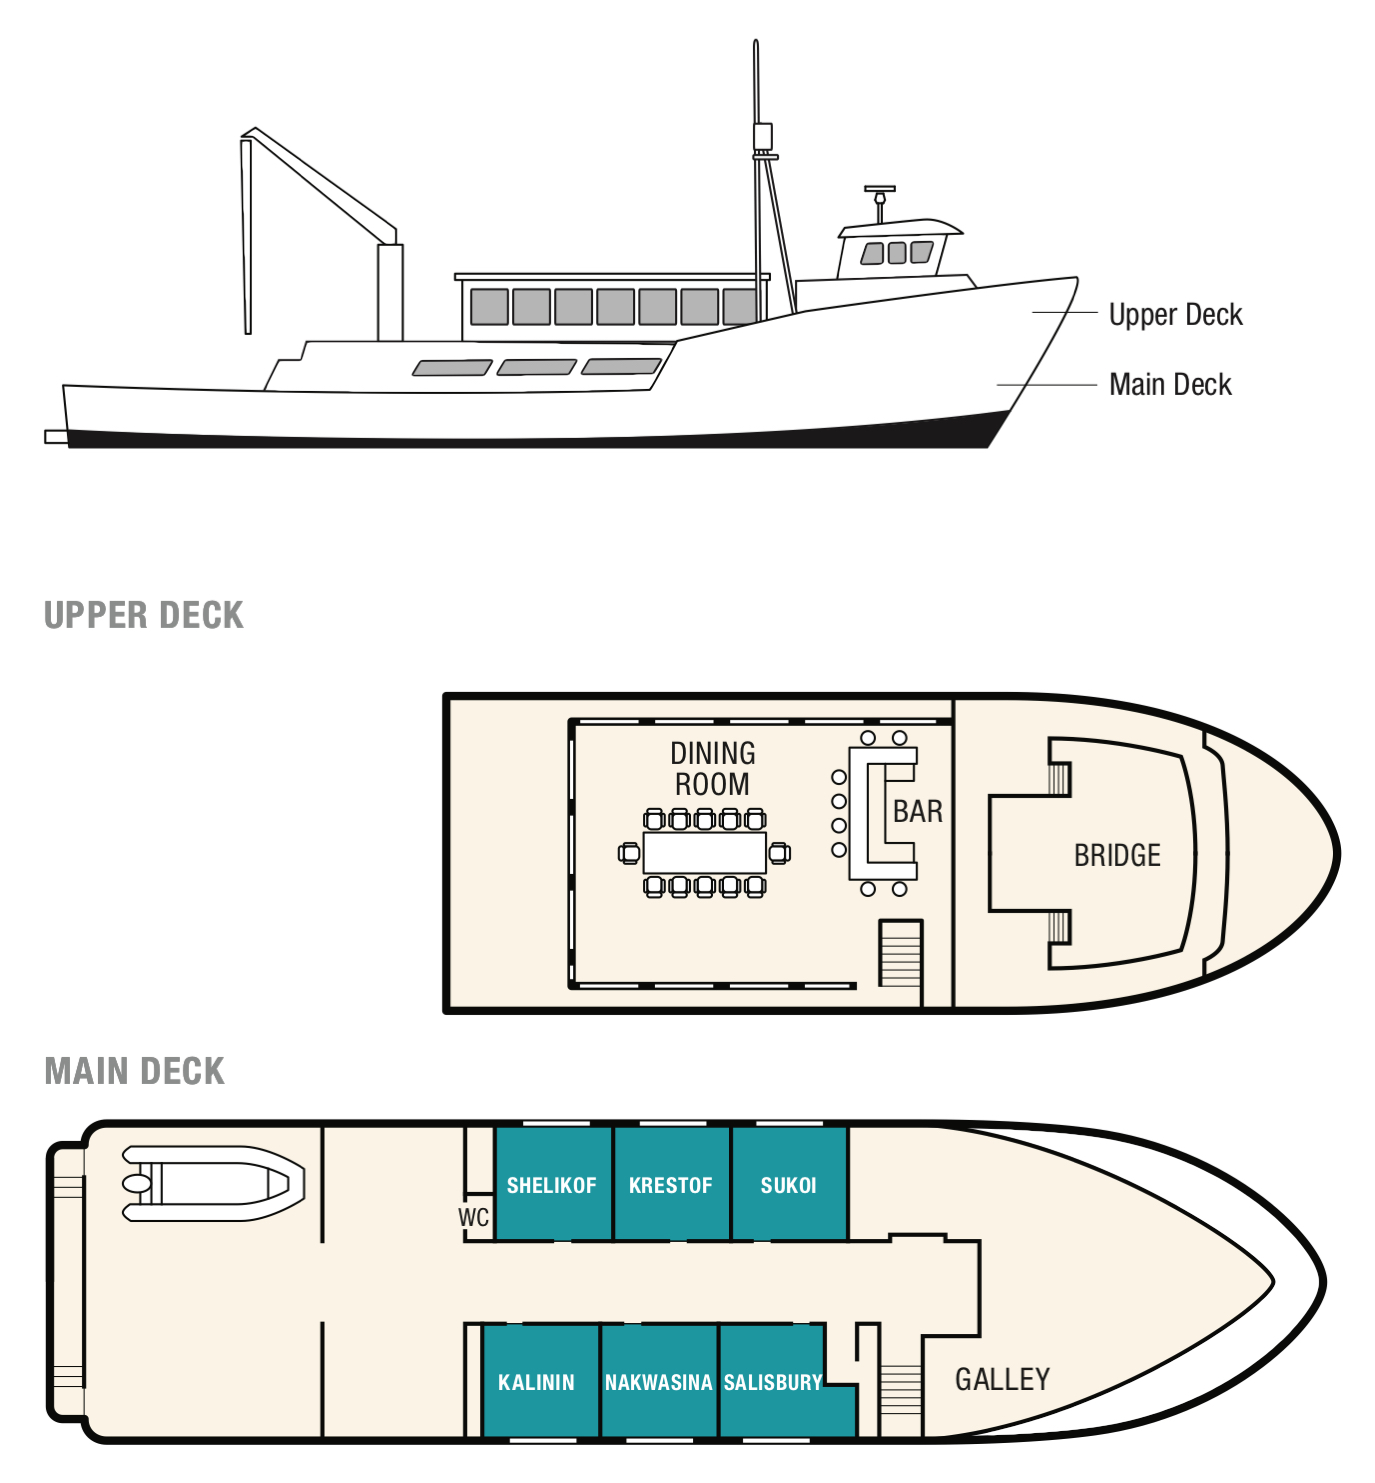 Cabin layout for Kruzof Explorer